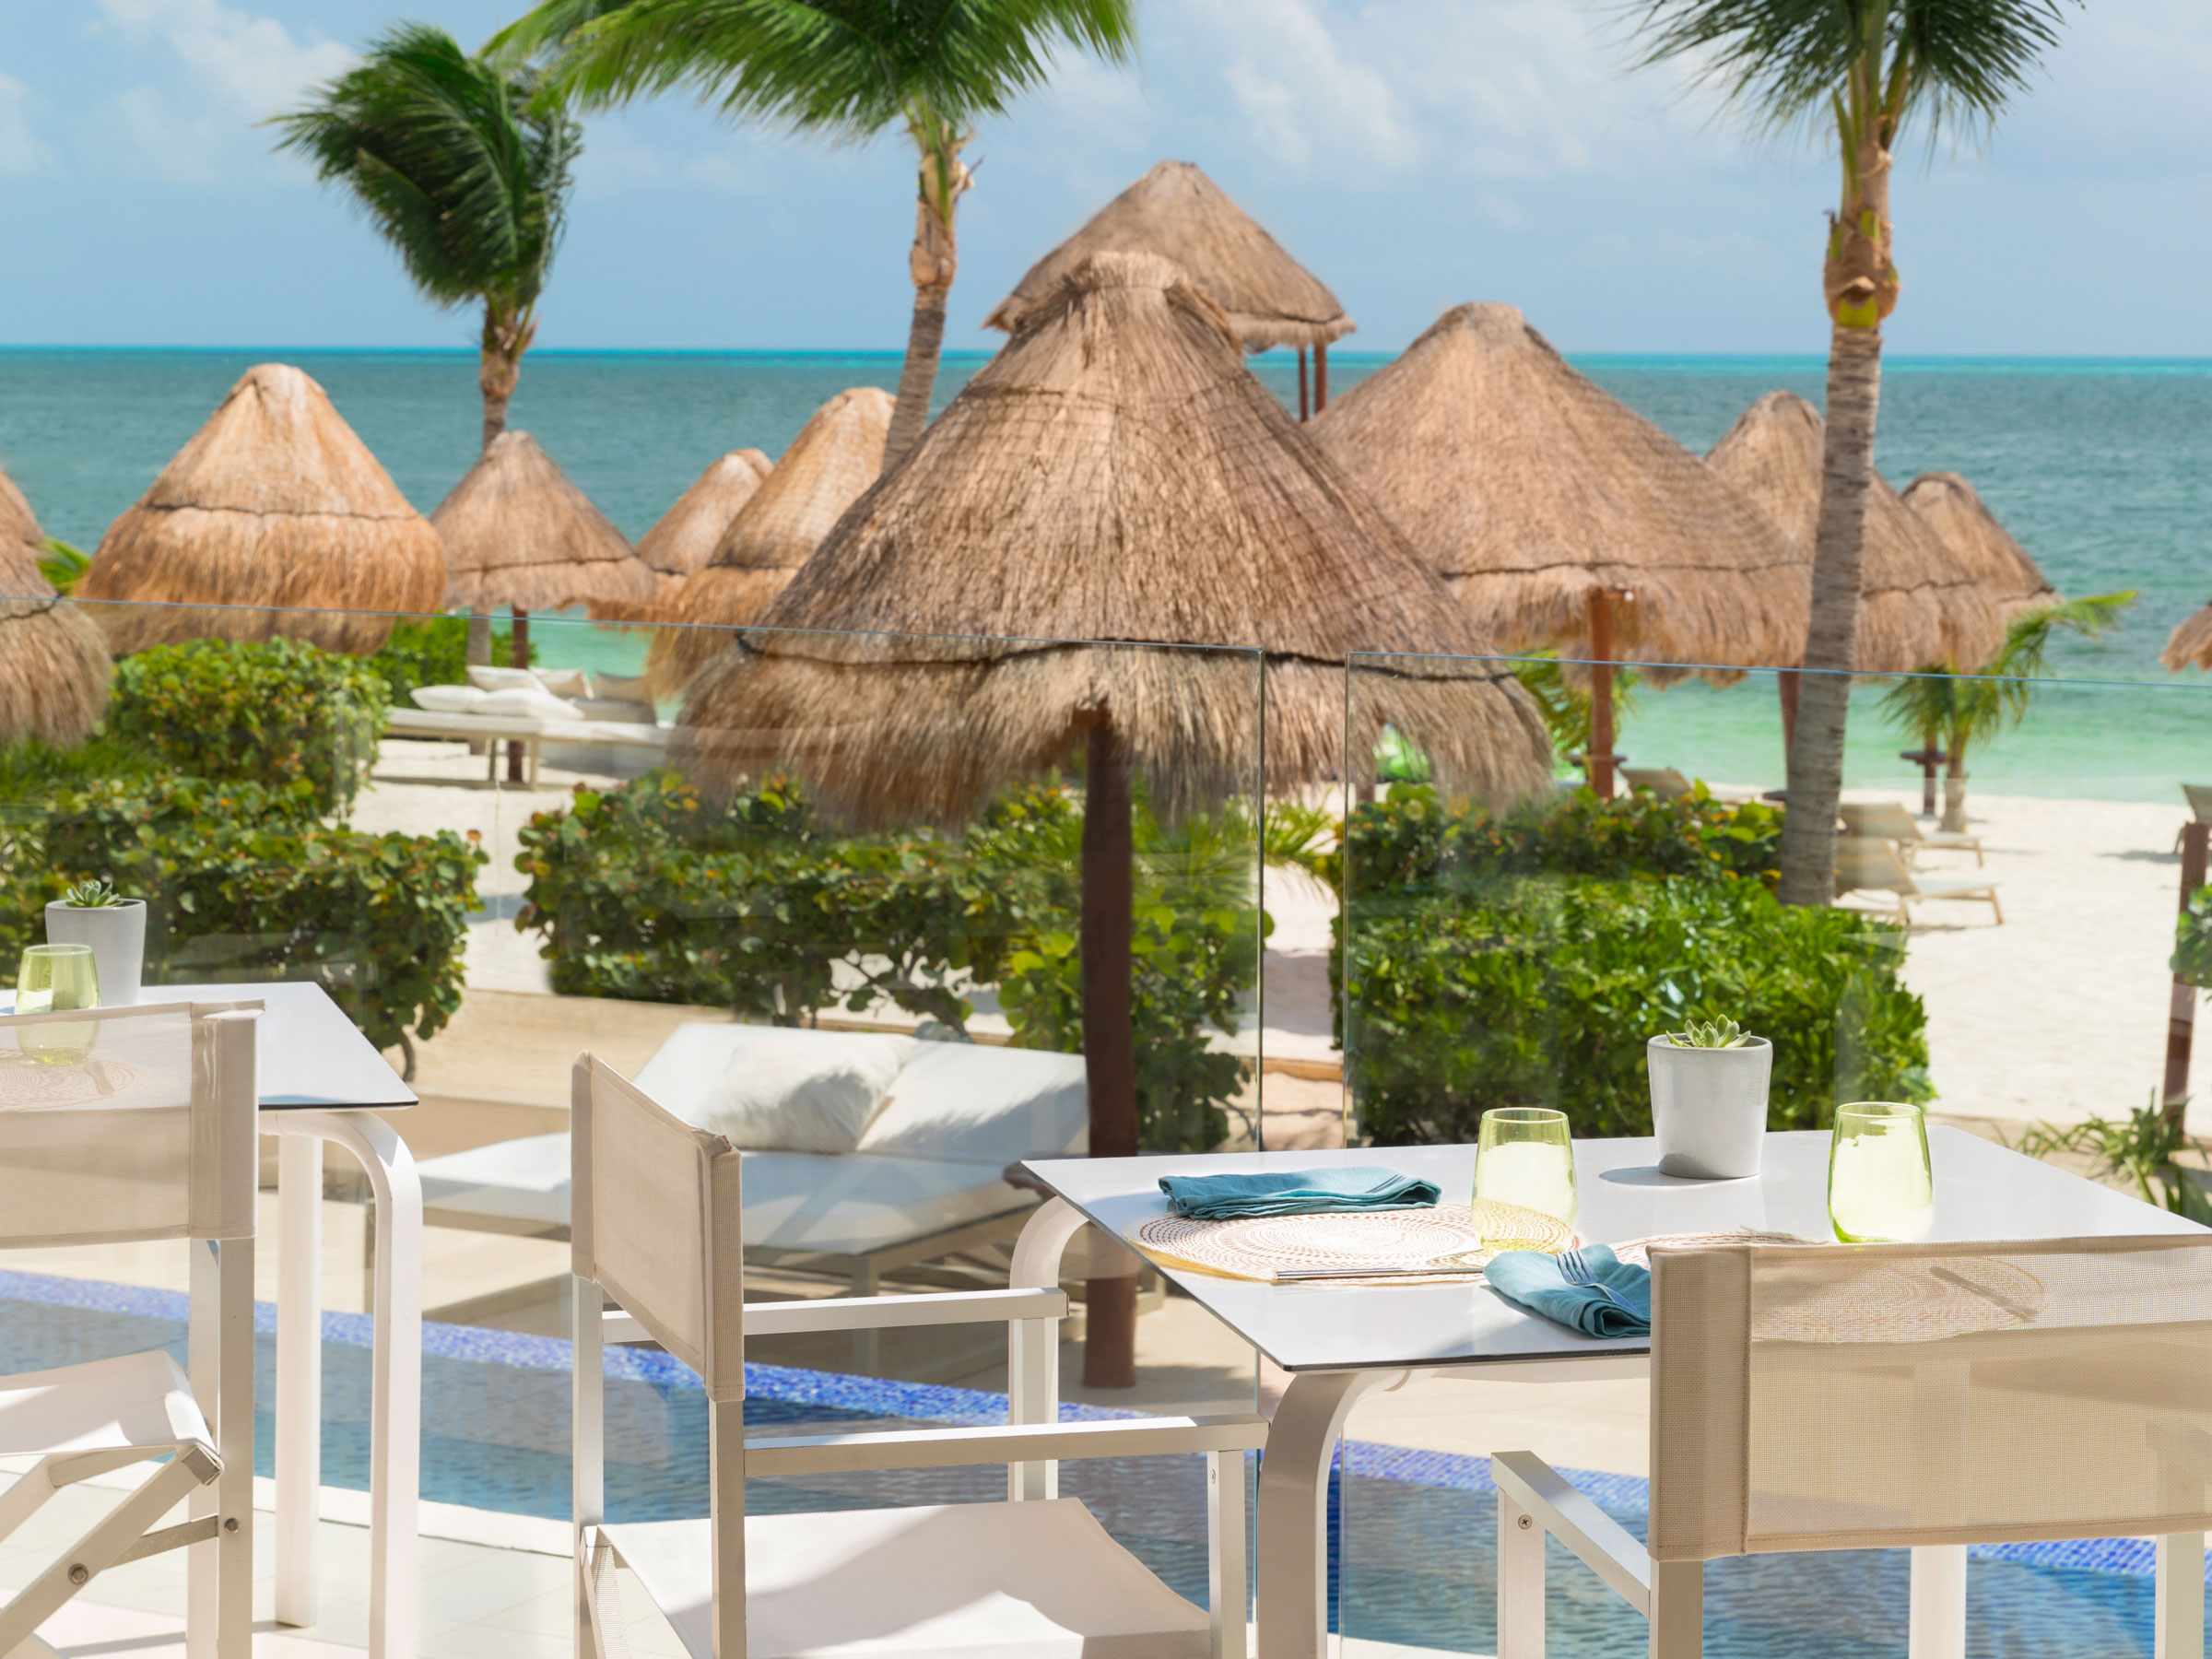 Beachfront Italian Restaurant in Cancun